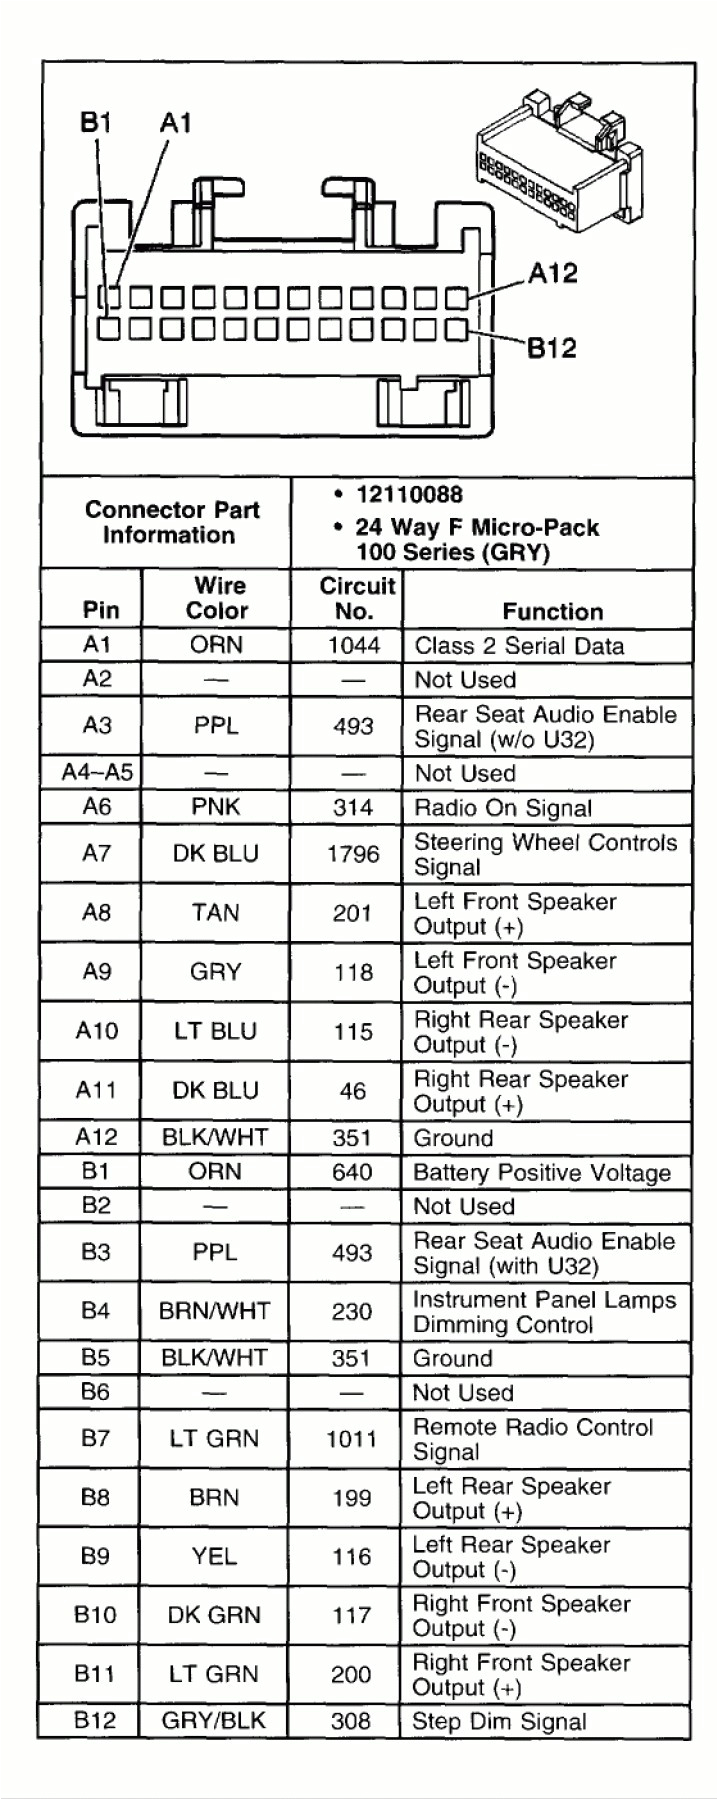 2000 Impala Radio Wiring Diagram 1996 Chevy Impala Radio Wiring Diagram Wiring Diagram Technic